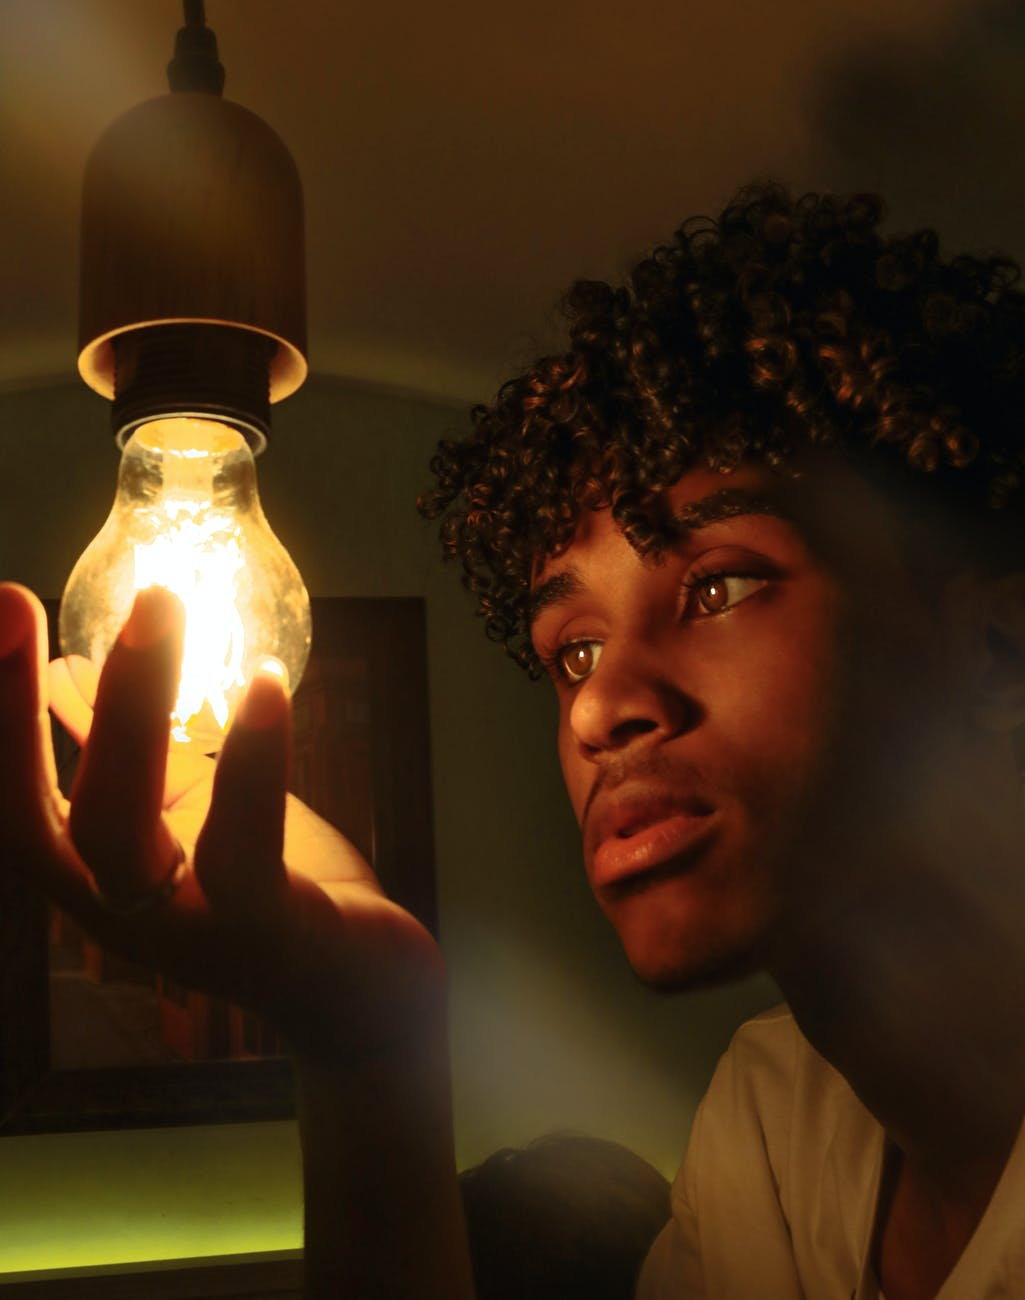 black man changing light bulb